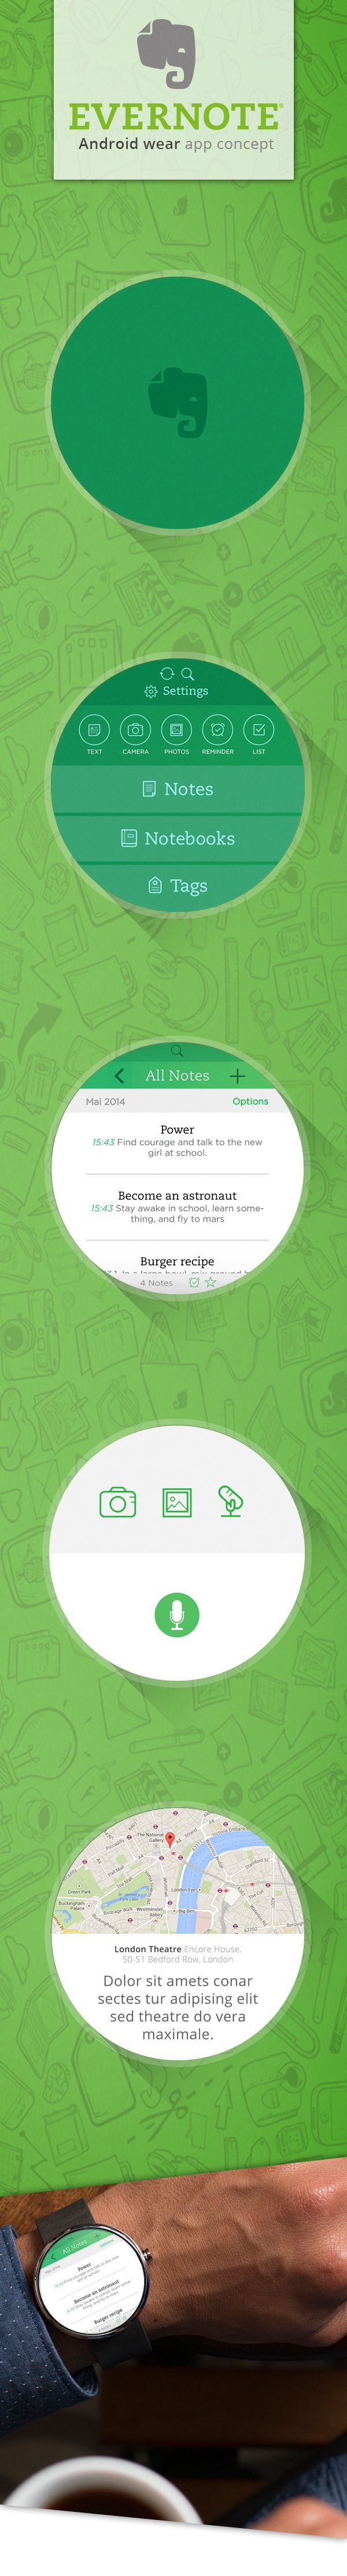 Evernote Portable - Android wear concept by Oliver Günther, via Behance #wearable #smart #watch #mobile #ui #ux #design via http://bit.ly/1rHjdmu